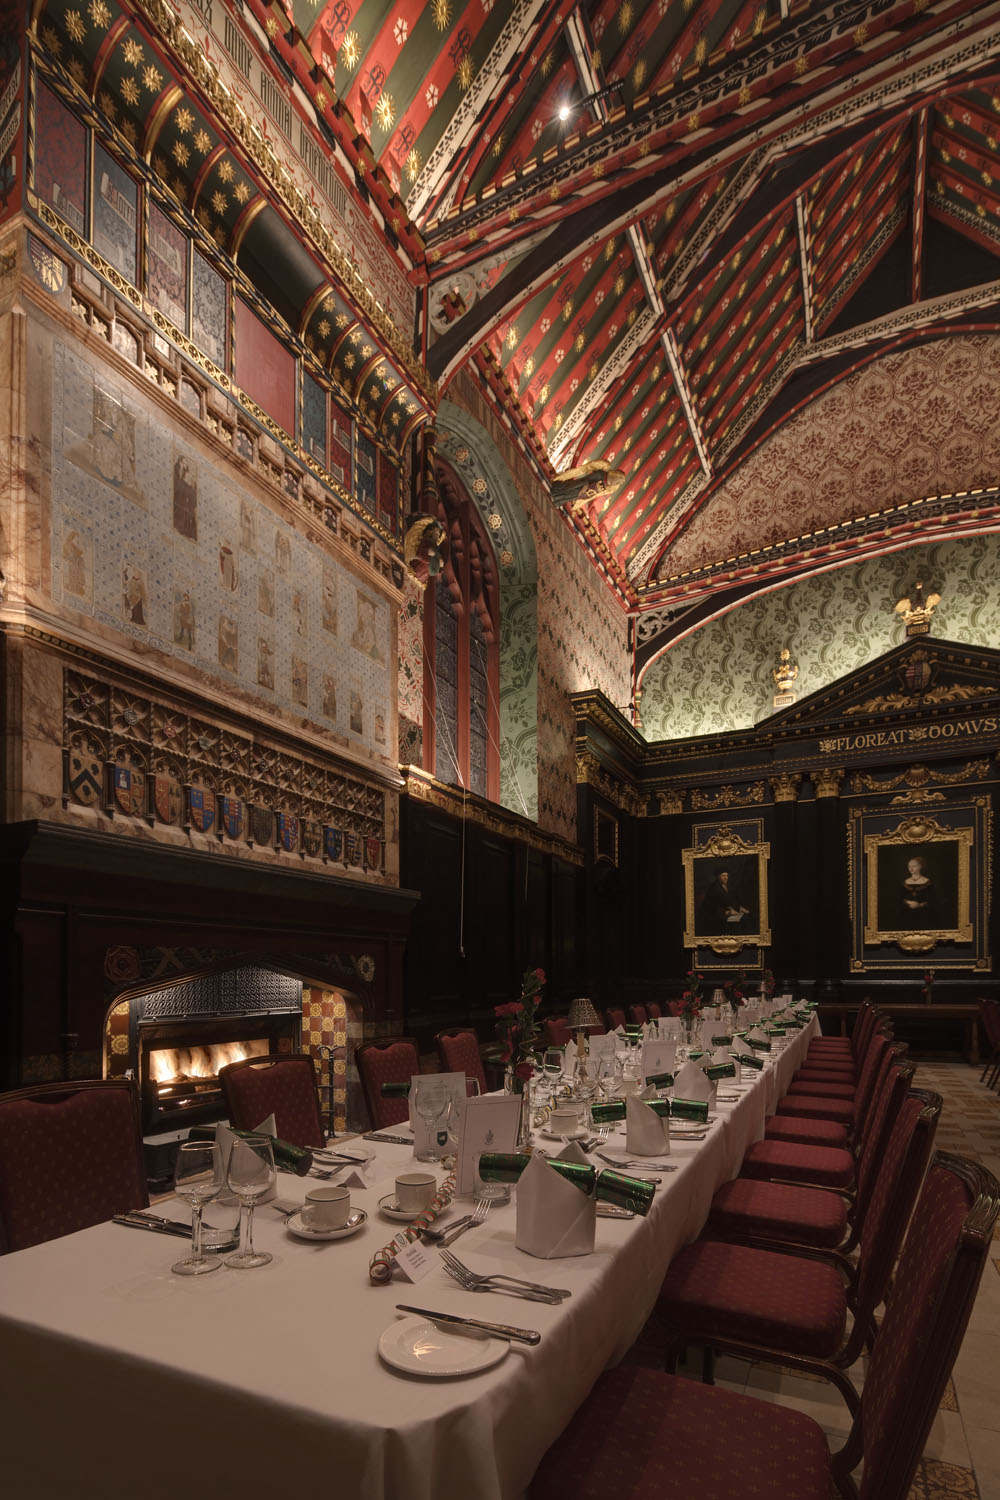 Lighting upgrade - The Old Hall, Queen's College, Cambridge